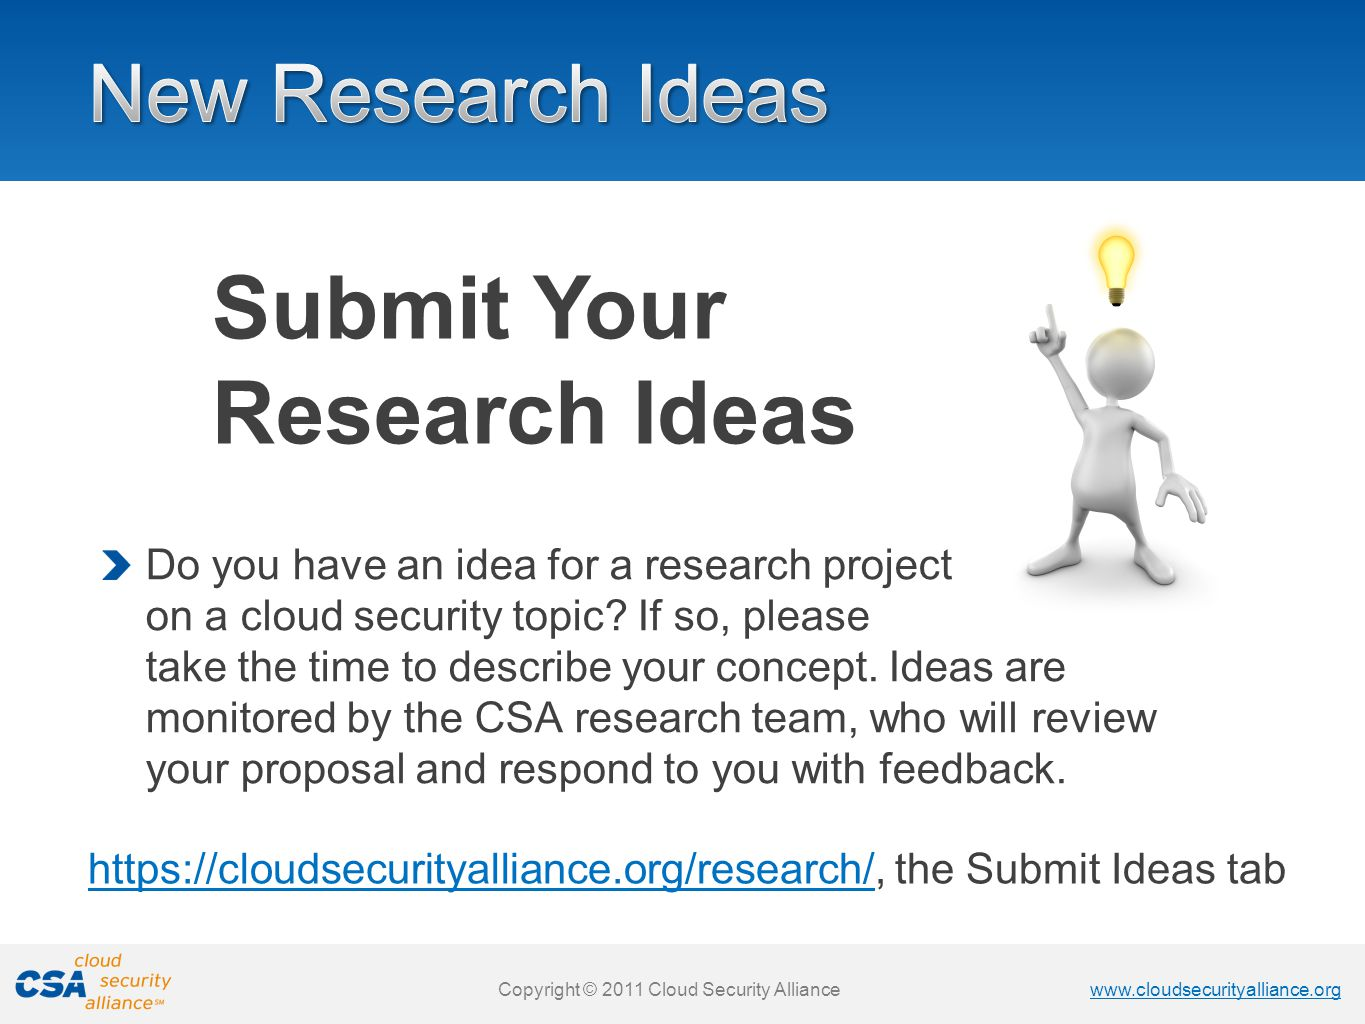 Submit Your Research Ideas